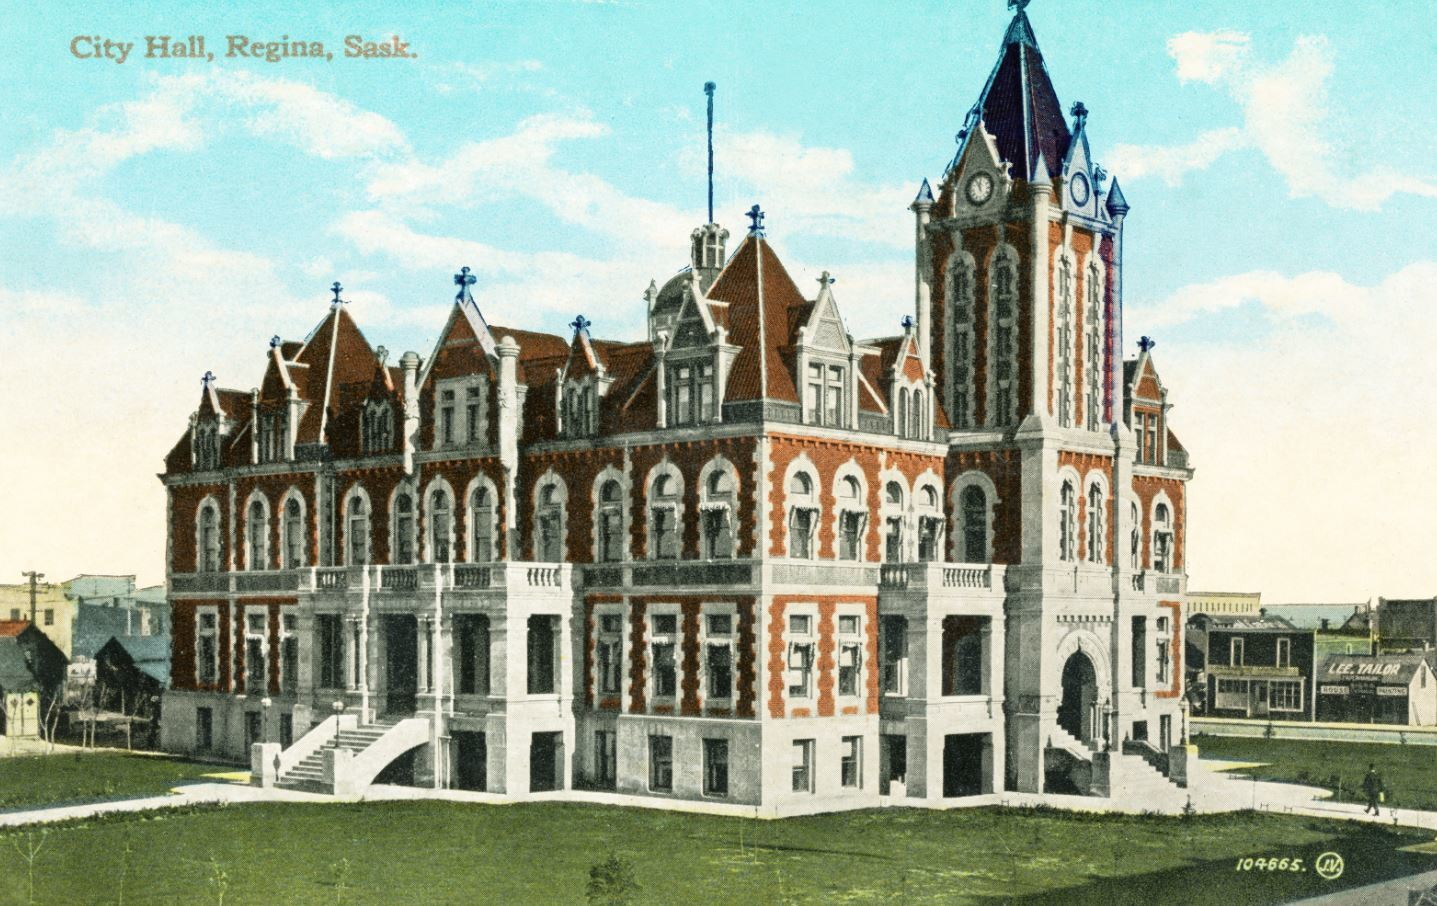 The Regina Orchestral Society's first home was in the original City Hall, located in what is now downtown Regina. (City of Regina Archives-C-0889)